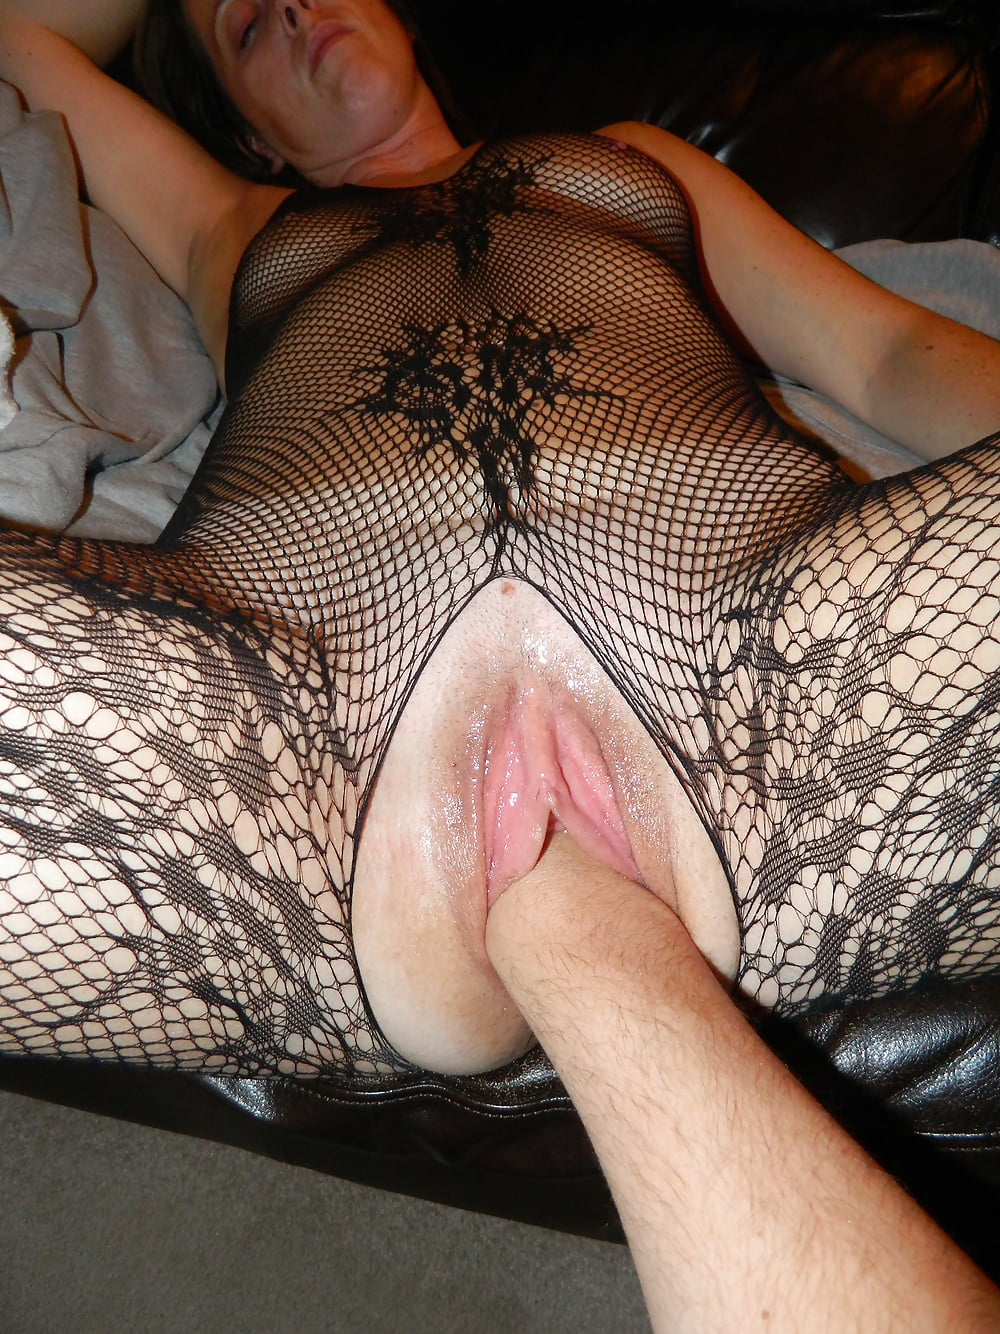 Showing xxx images for femdom foot fisting xxx